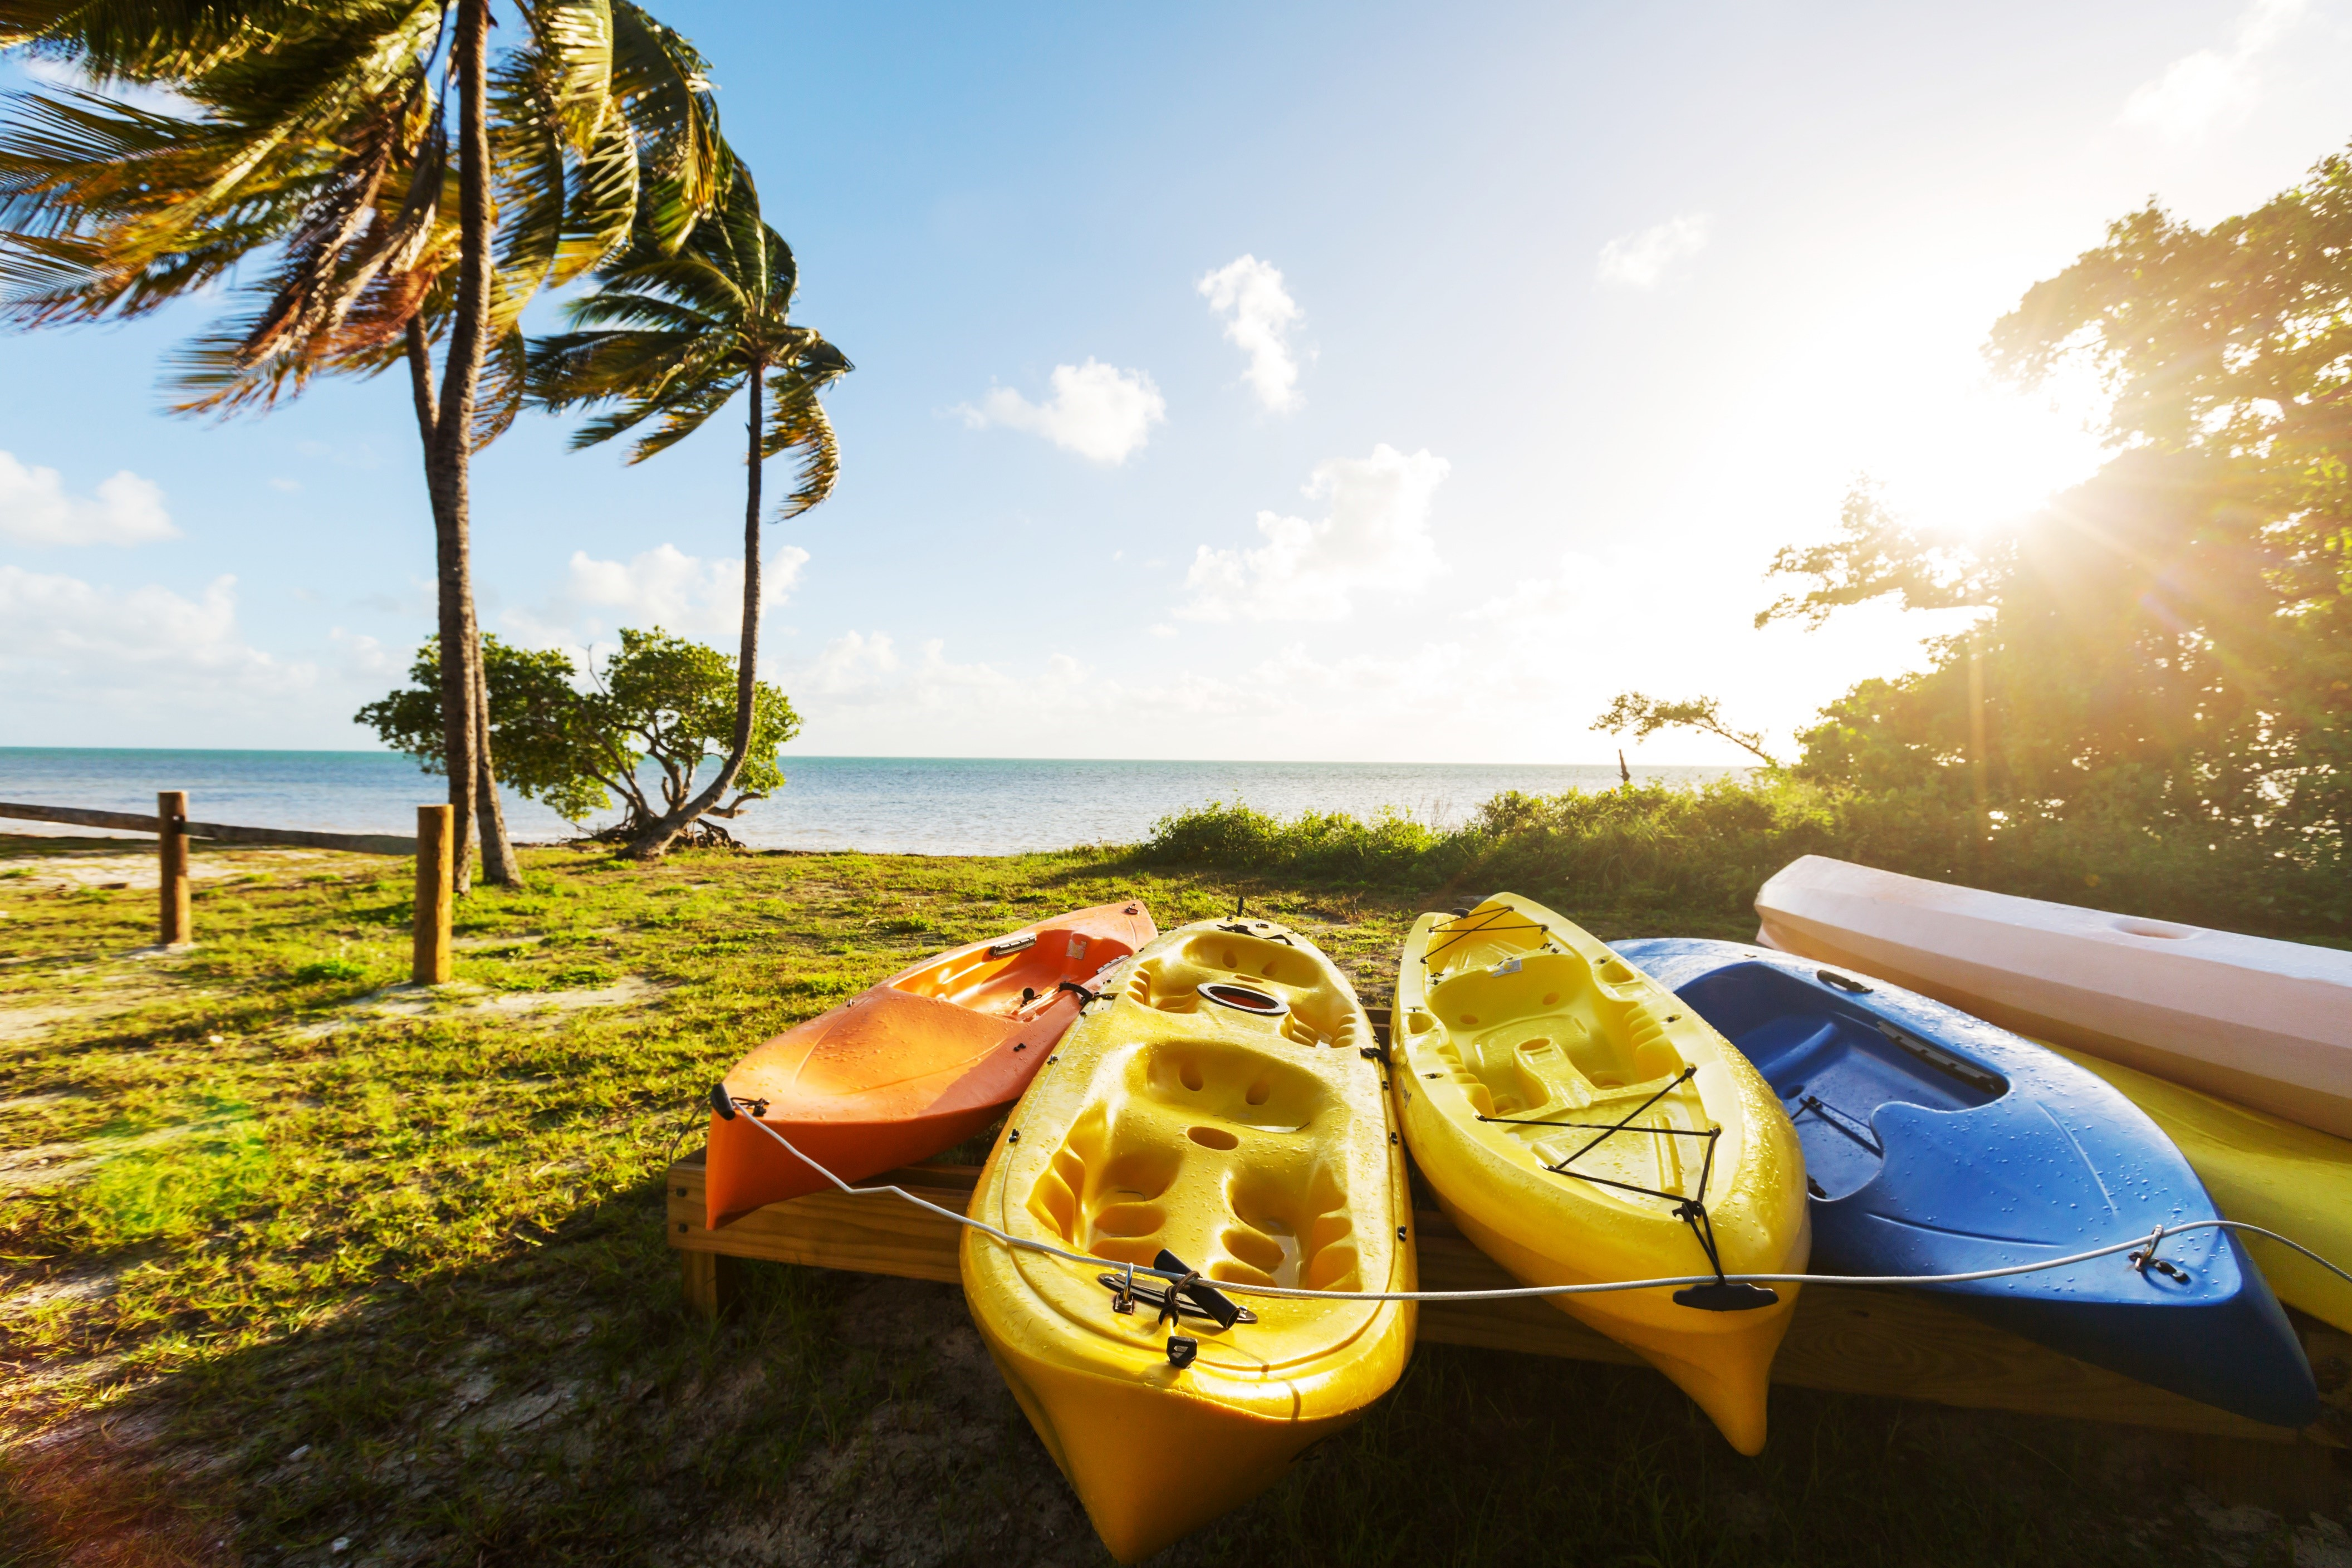 37 Ways To Savor Your Summer: Six Ways To Enjoy The Summer In South Florida